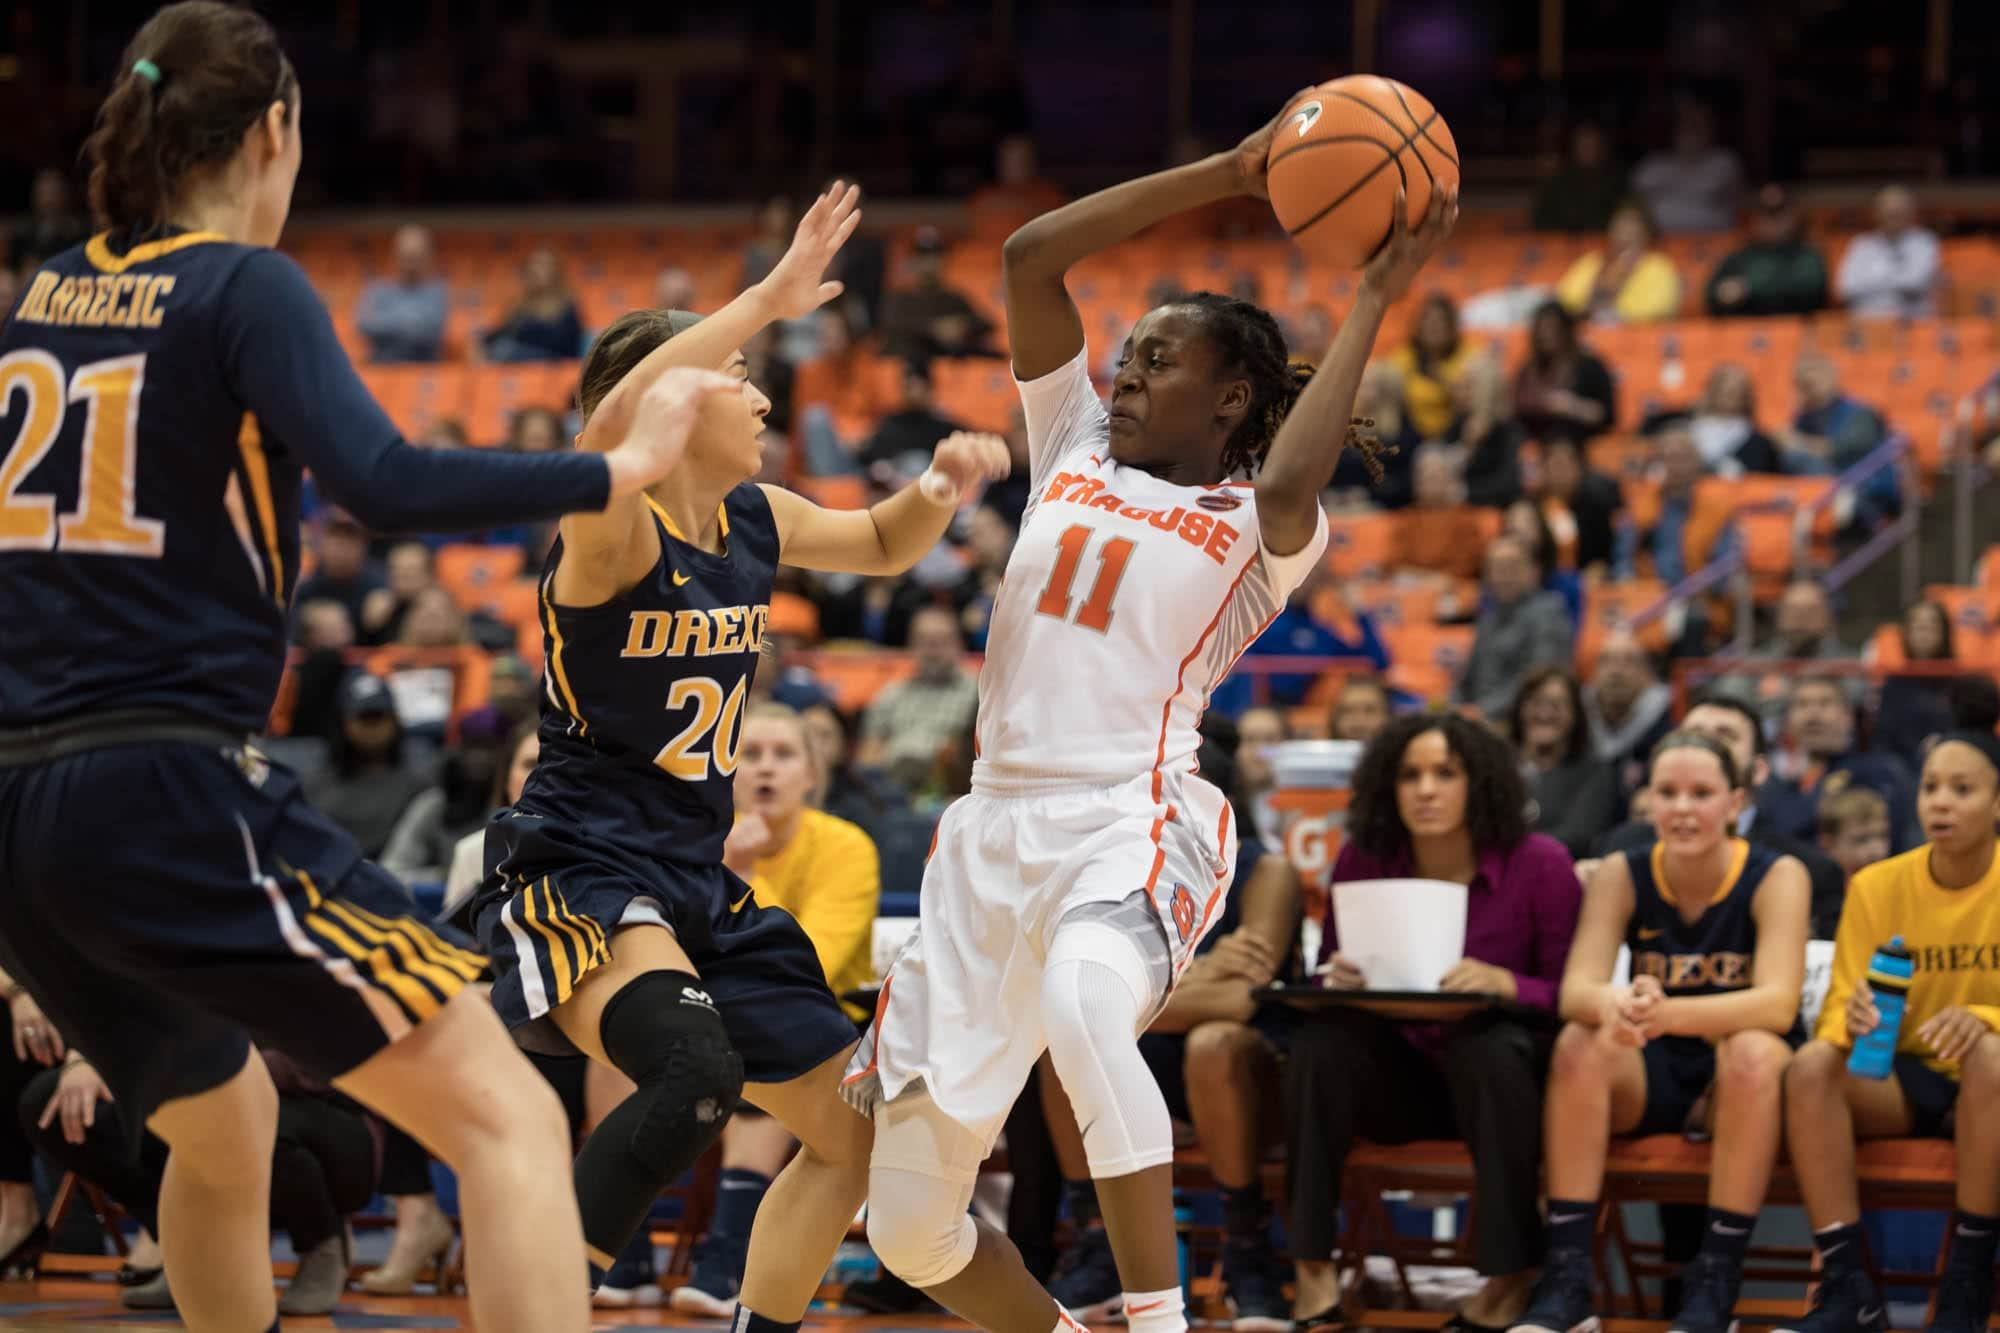 Women's basketball versus Drexel